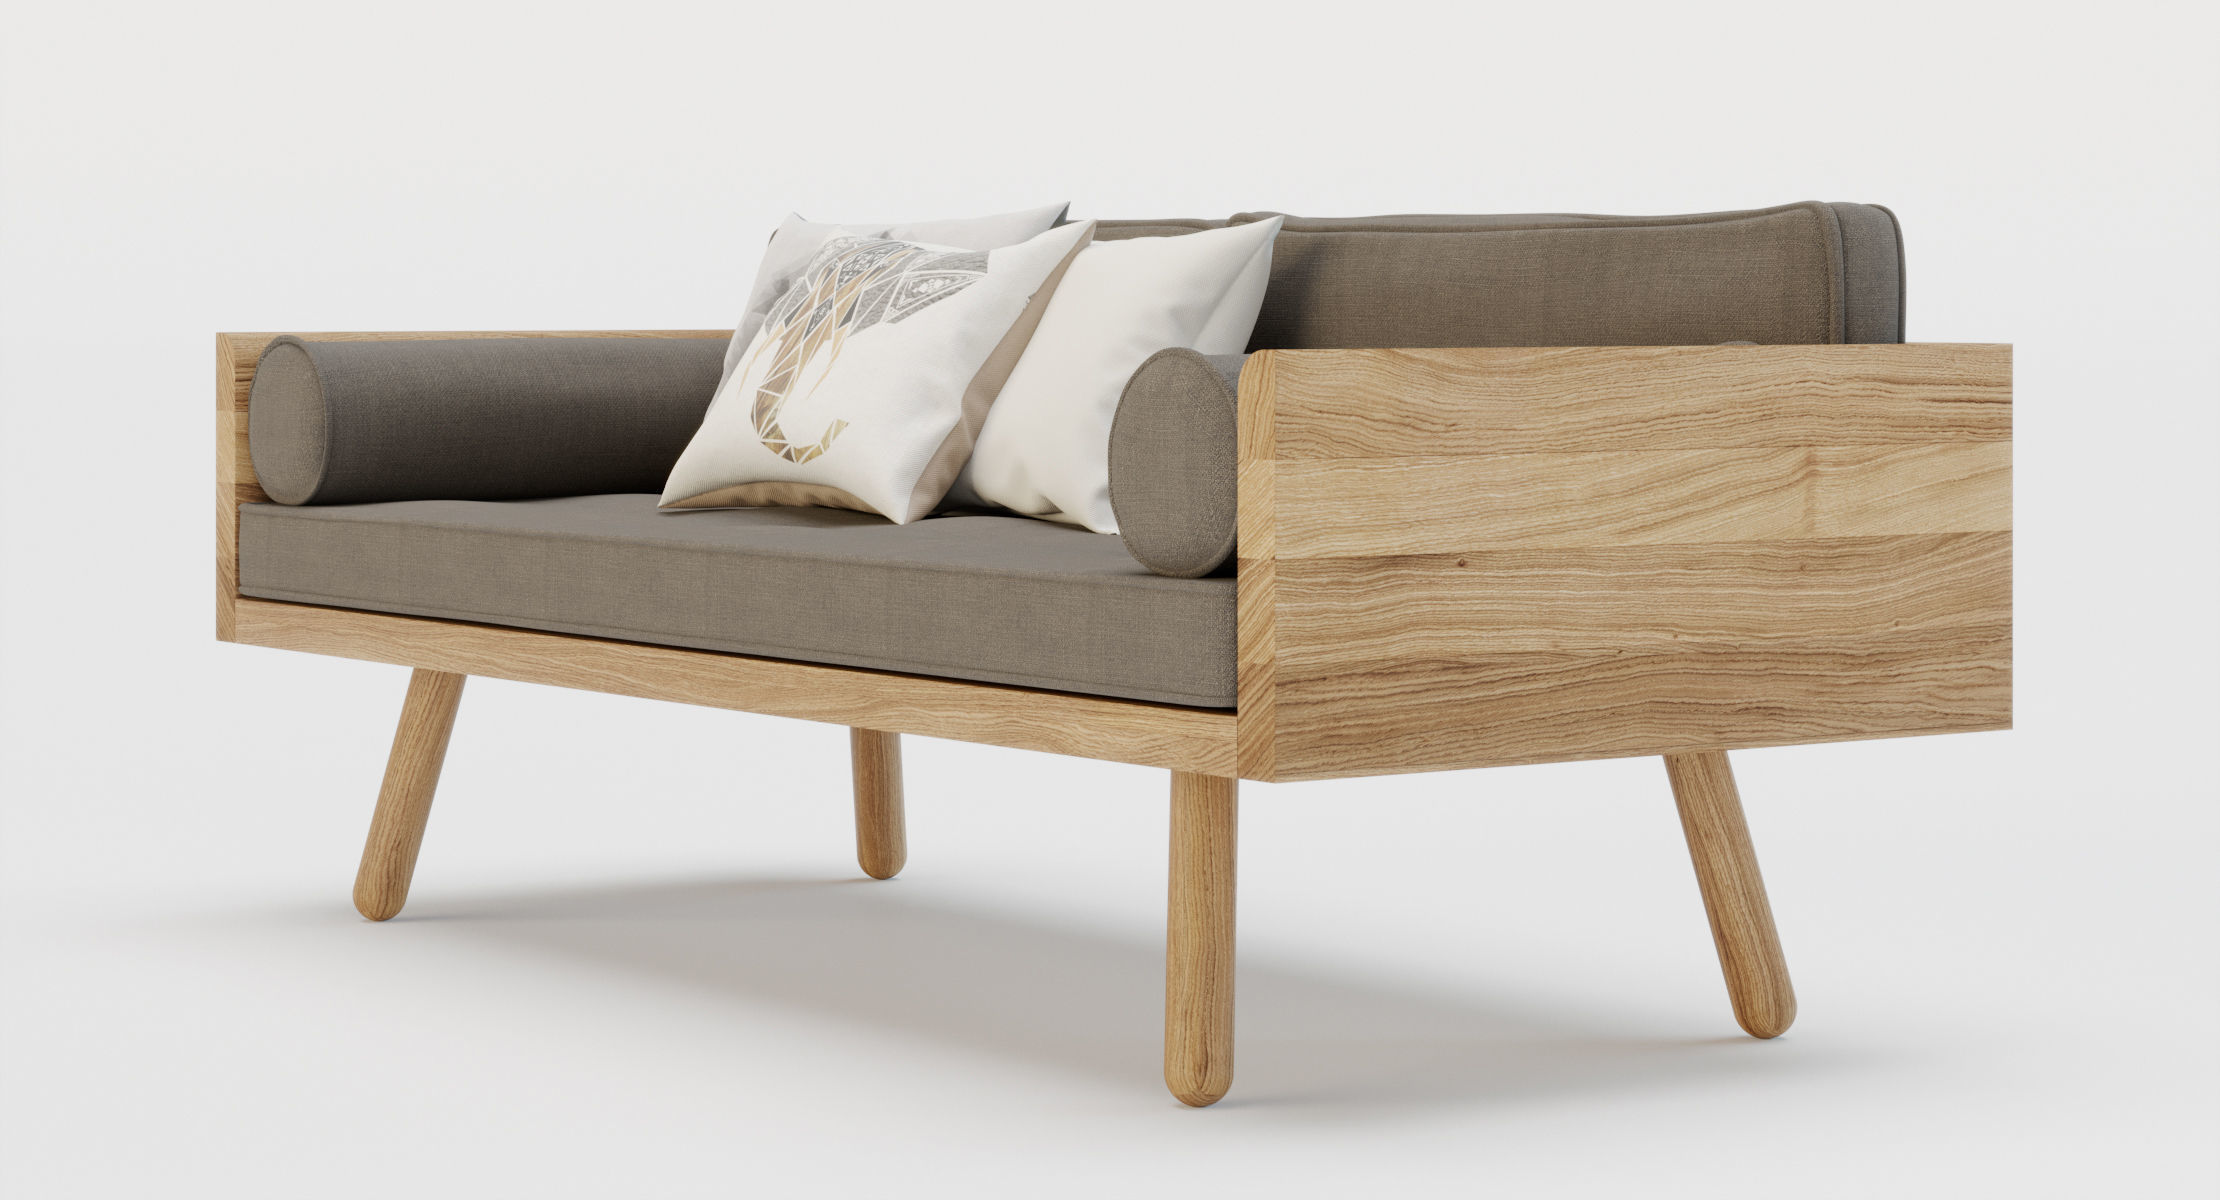 ... Furniture   Another Country Modern Sofa   C4d Native   Corona 3d Model  C4d ...